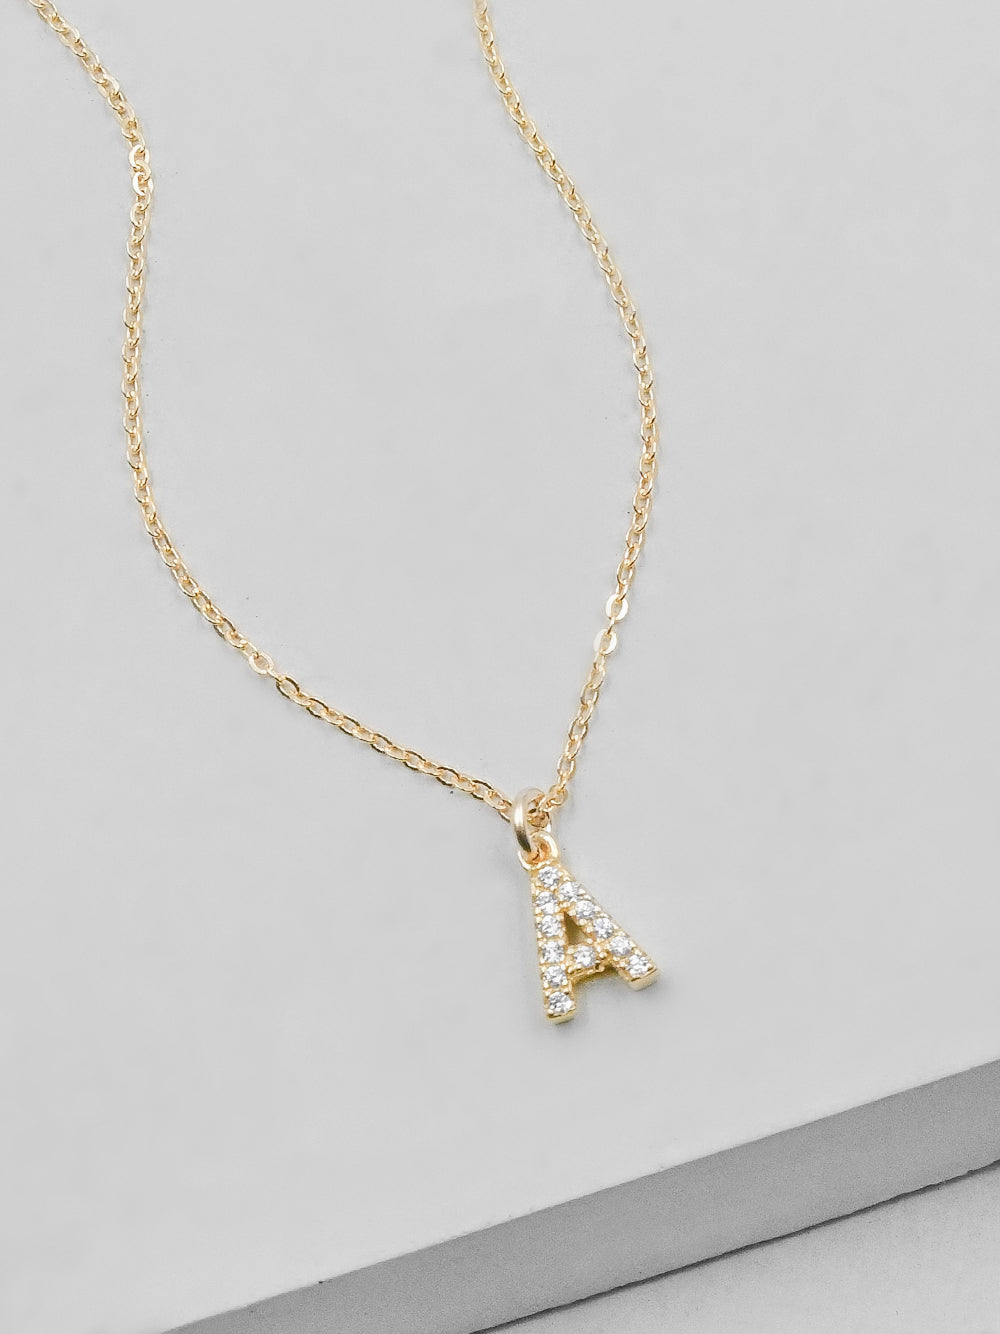 Gold Sparkle Initial Necklace by The Faint Hearted Jewelry